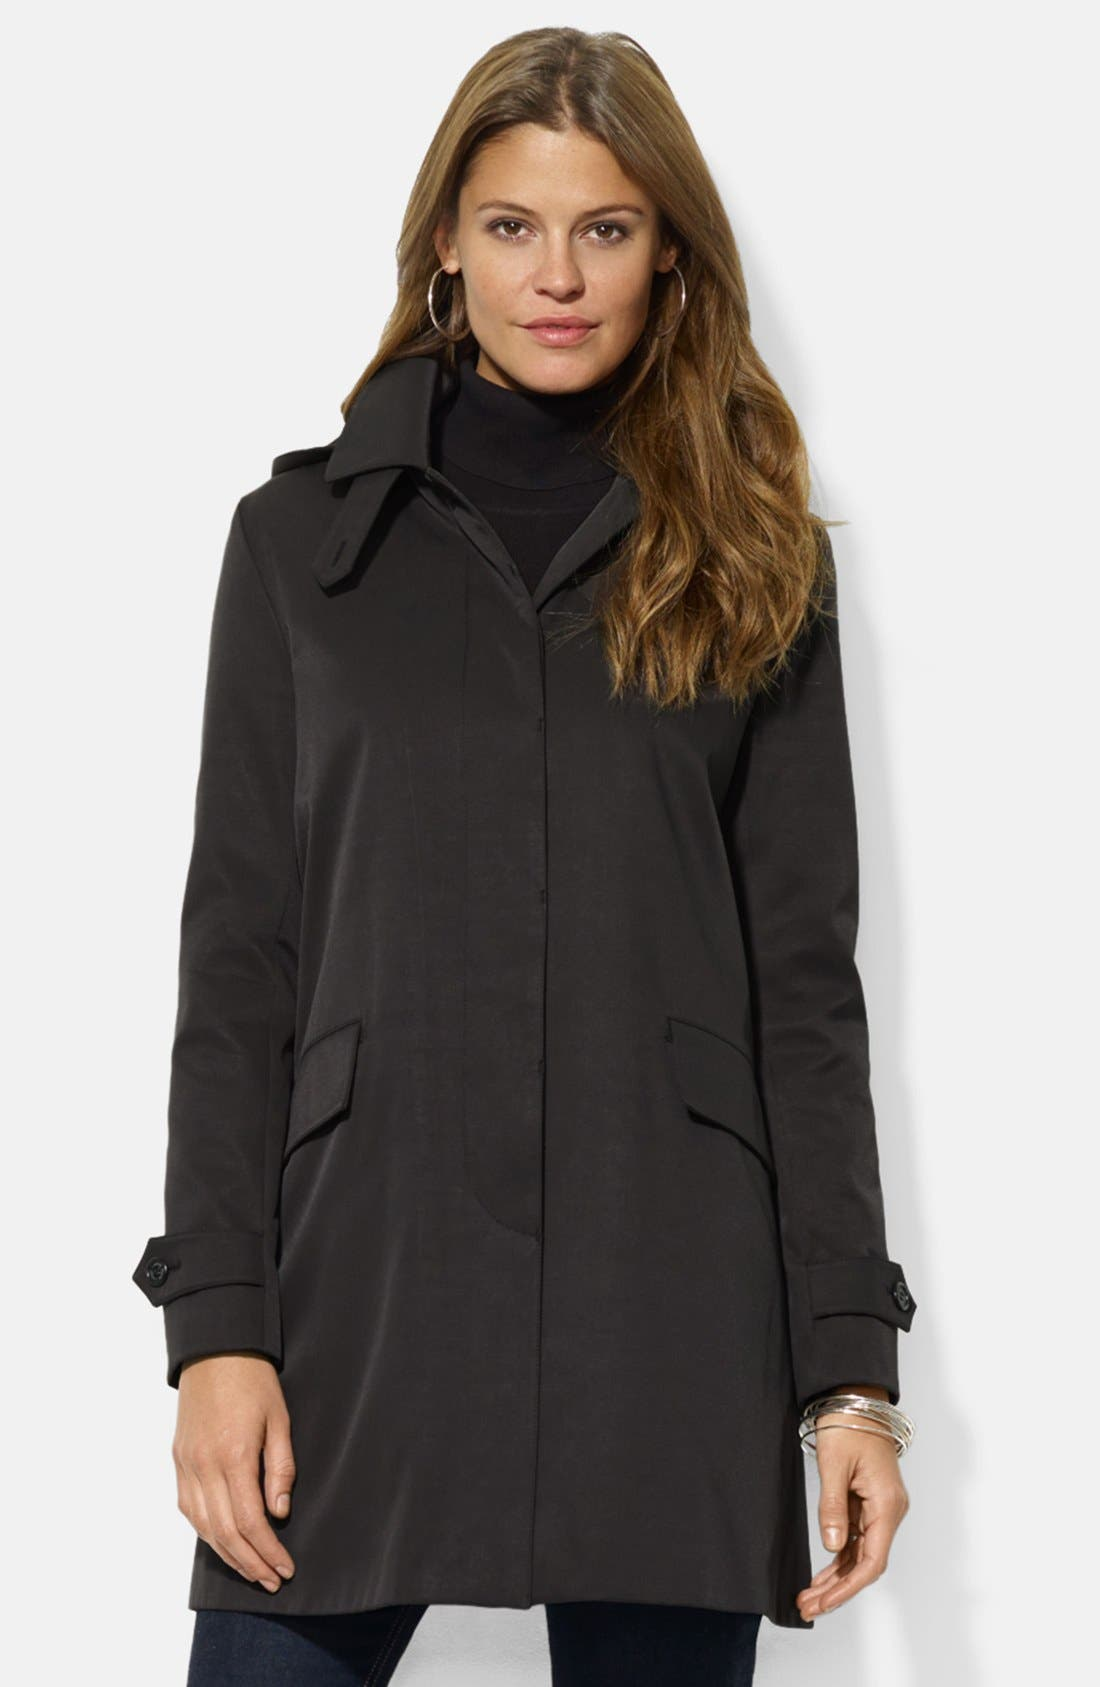 Alternate Image 1 Selected - Lauren Ralph Lauren Rain Jacket with Detachable Hood & Liner (Nordstrom Exclusive)